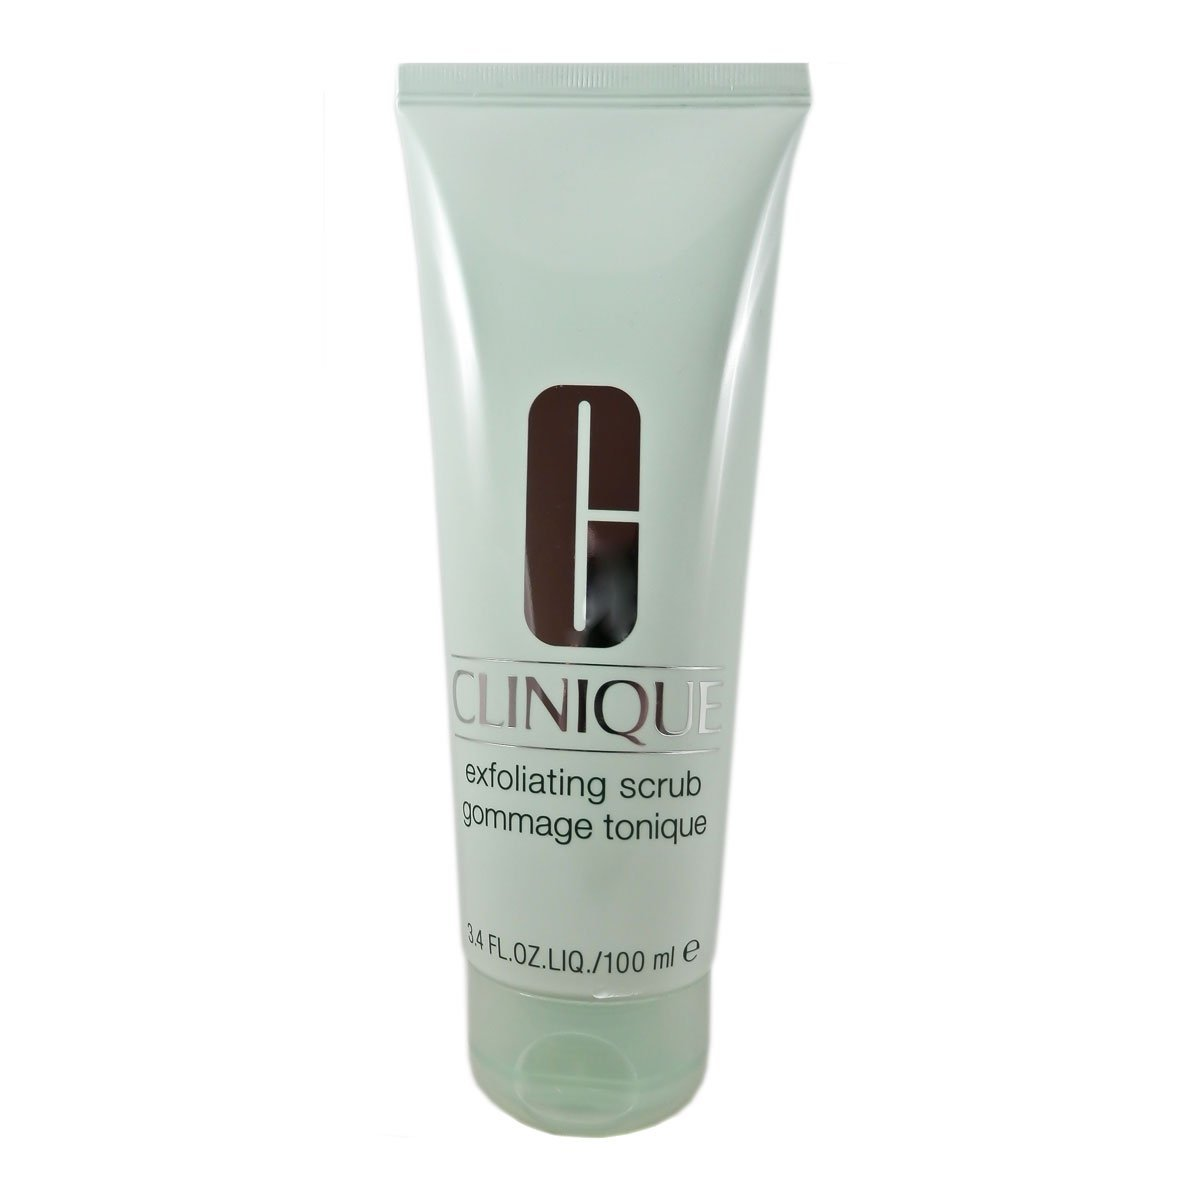 Clinique Exfoliating Scrub for Unisex, 3.4 Ounce by Clinique